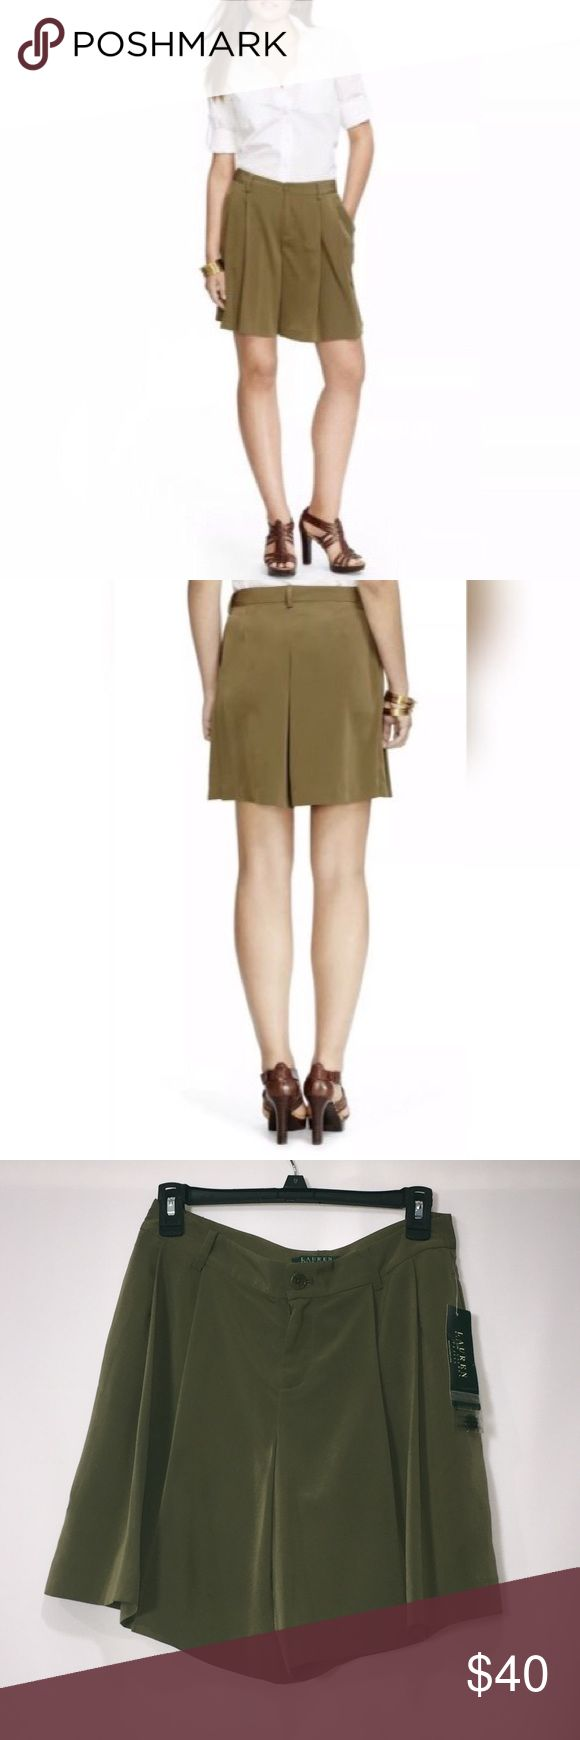 Ralph Lauren Olive Green Shorts Style up these chick olive green shorts from Ralph Lauren with a simple tee or a button up. Easily worn up or down. This wonderful piece from Ralph Lauren is a must have. Ralph Lauren Shorts